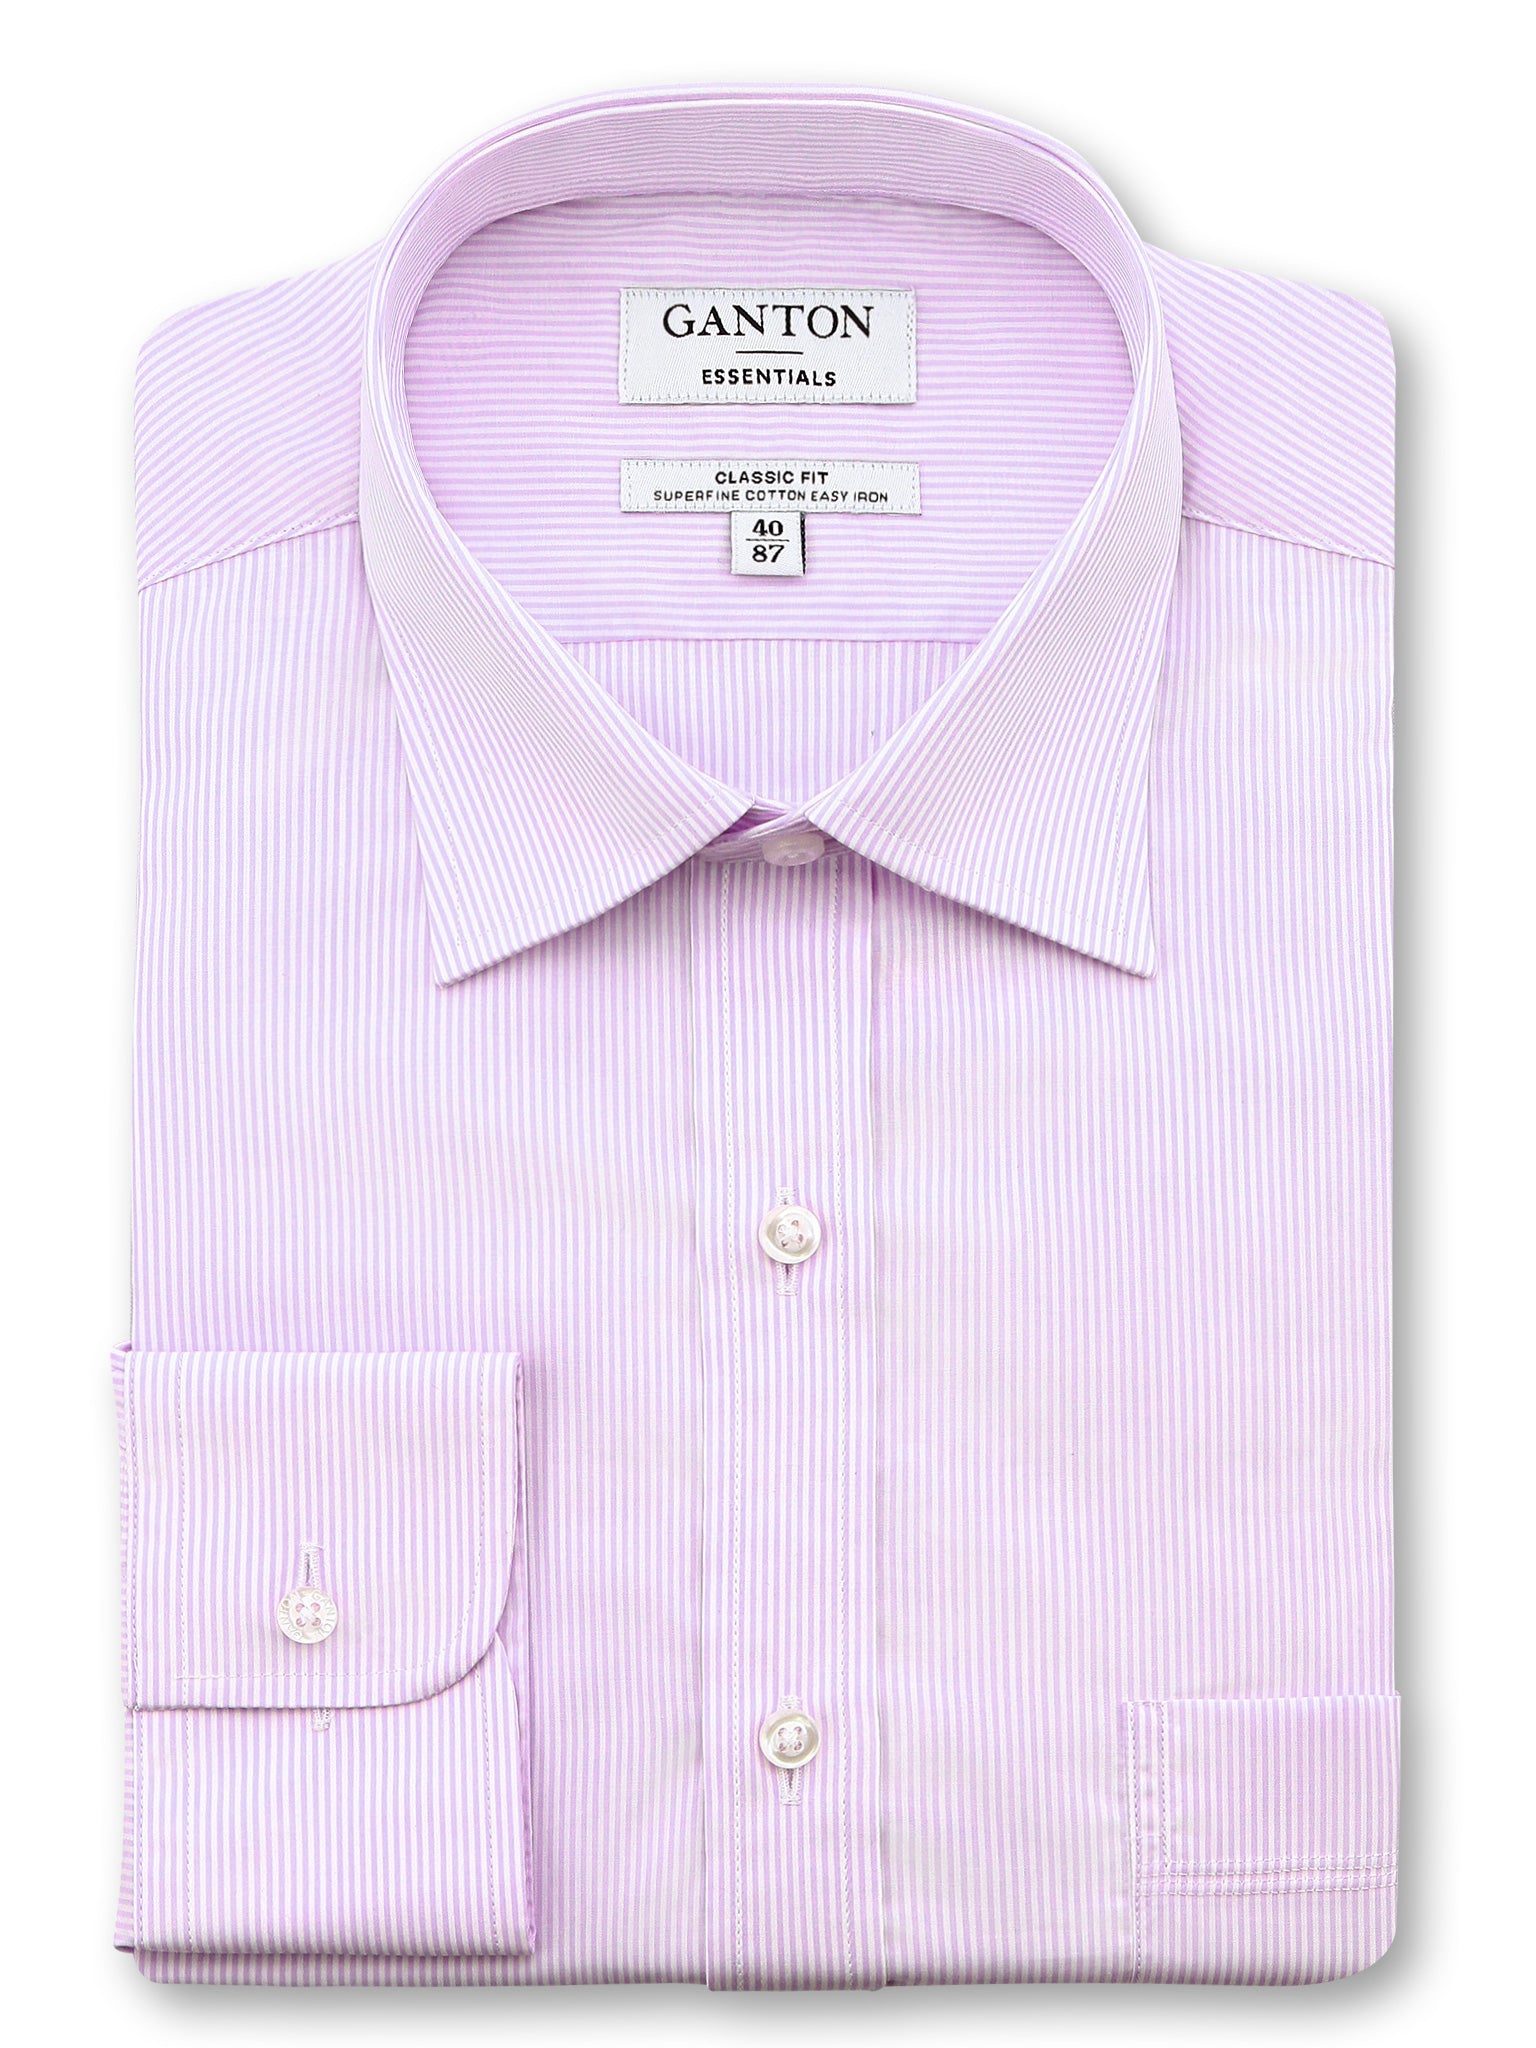 All Pink White Stripe Classic Fit Elling Easy Iron Superfine Cotton Essentials Shirt